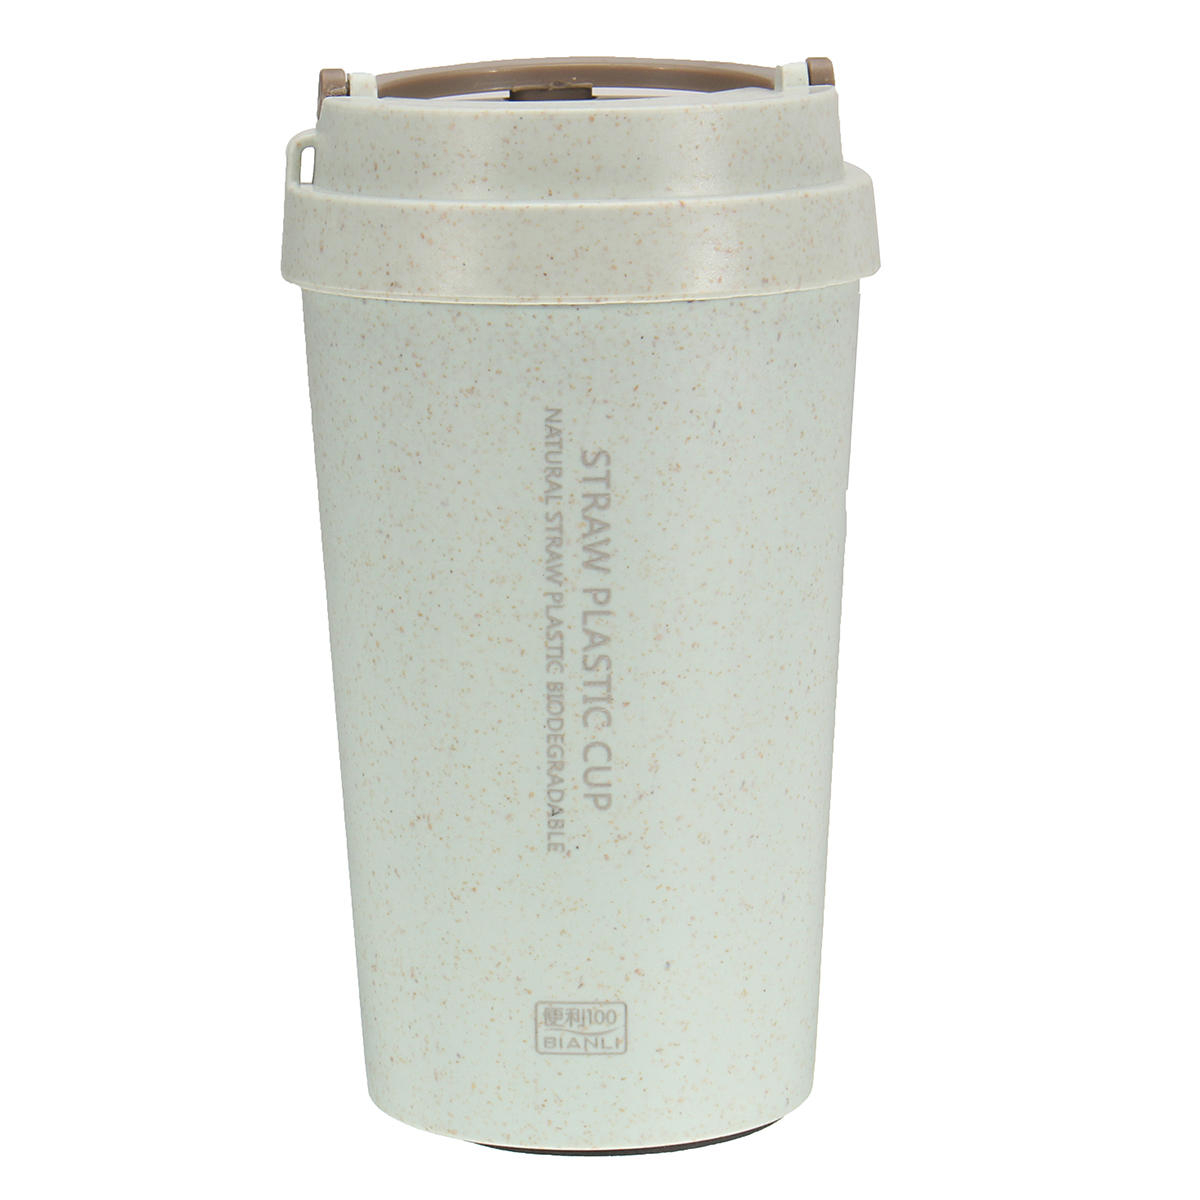 400L Wheat Straw Portable Double-Wall Vacuum Bottle Coffee Cup Insulated  Mug Water Bottle intended for Decorative Three Stacked Coffee Tea Cups Iron Widget Wall Decor (Image 4 of 30)